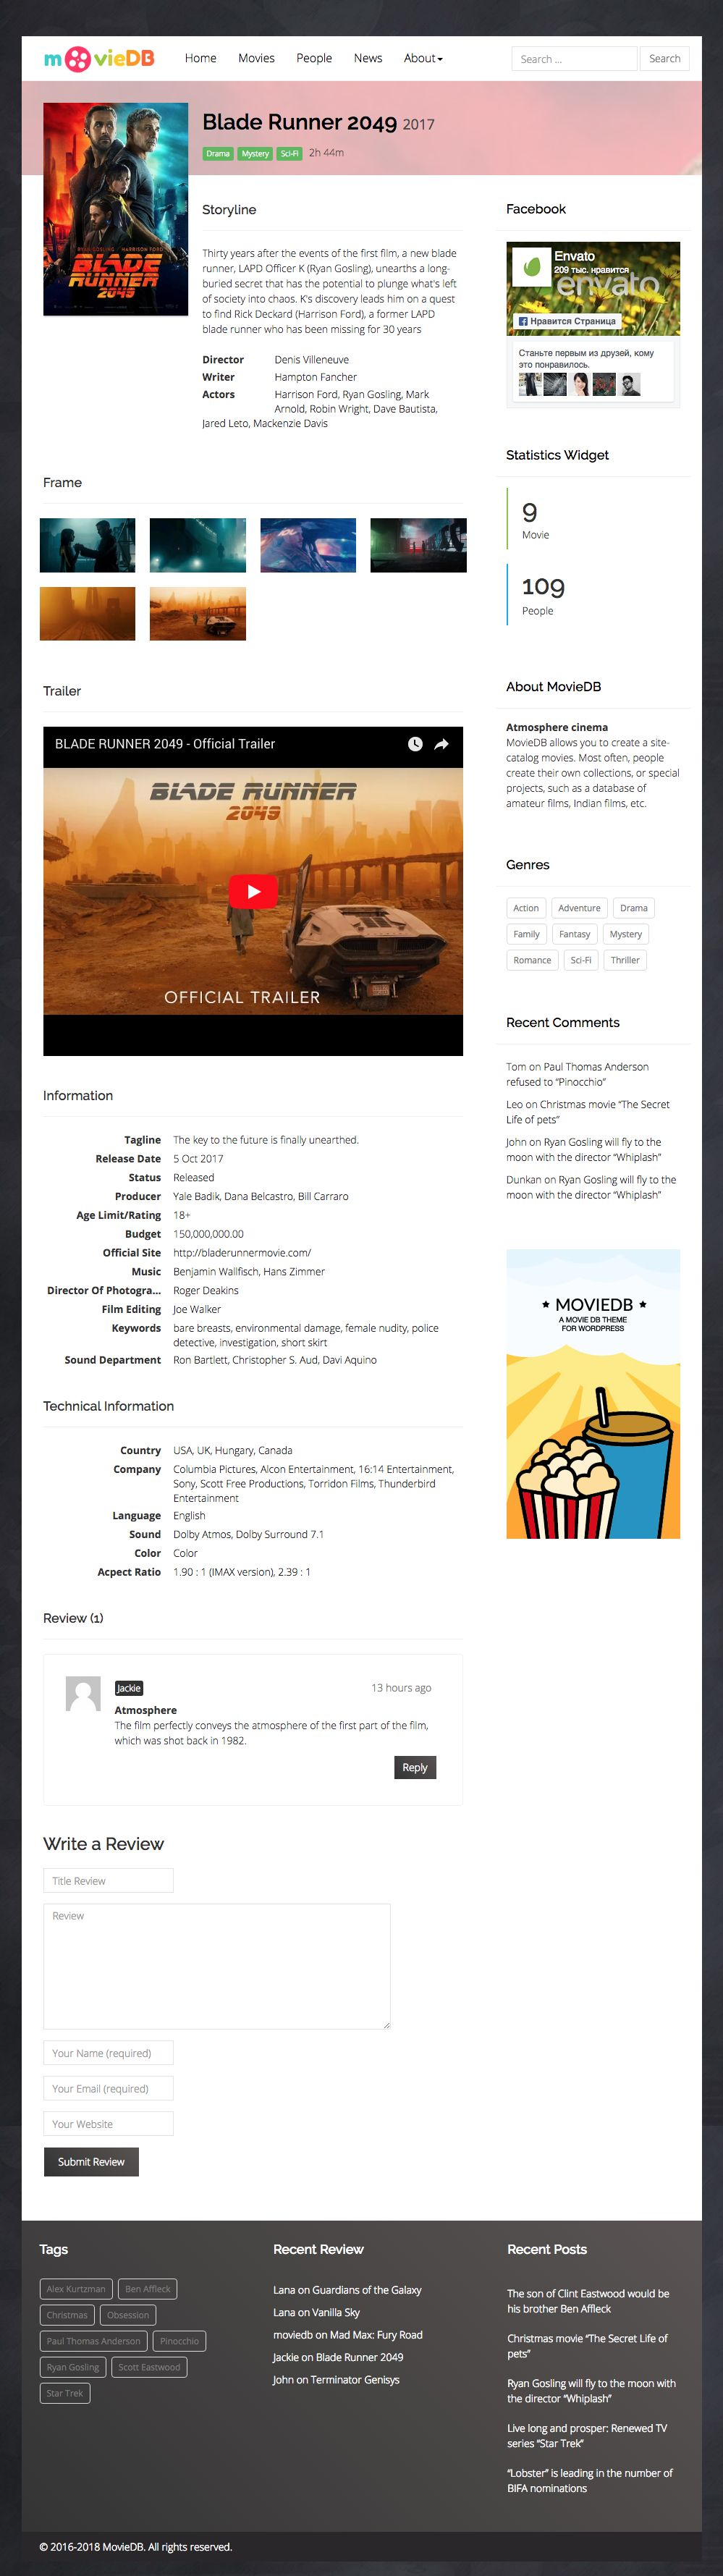 MovieDB Wordpress Theme Screenshot 6